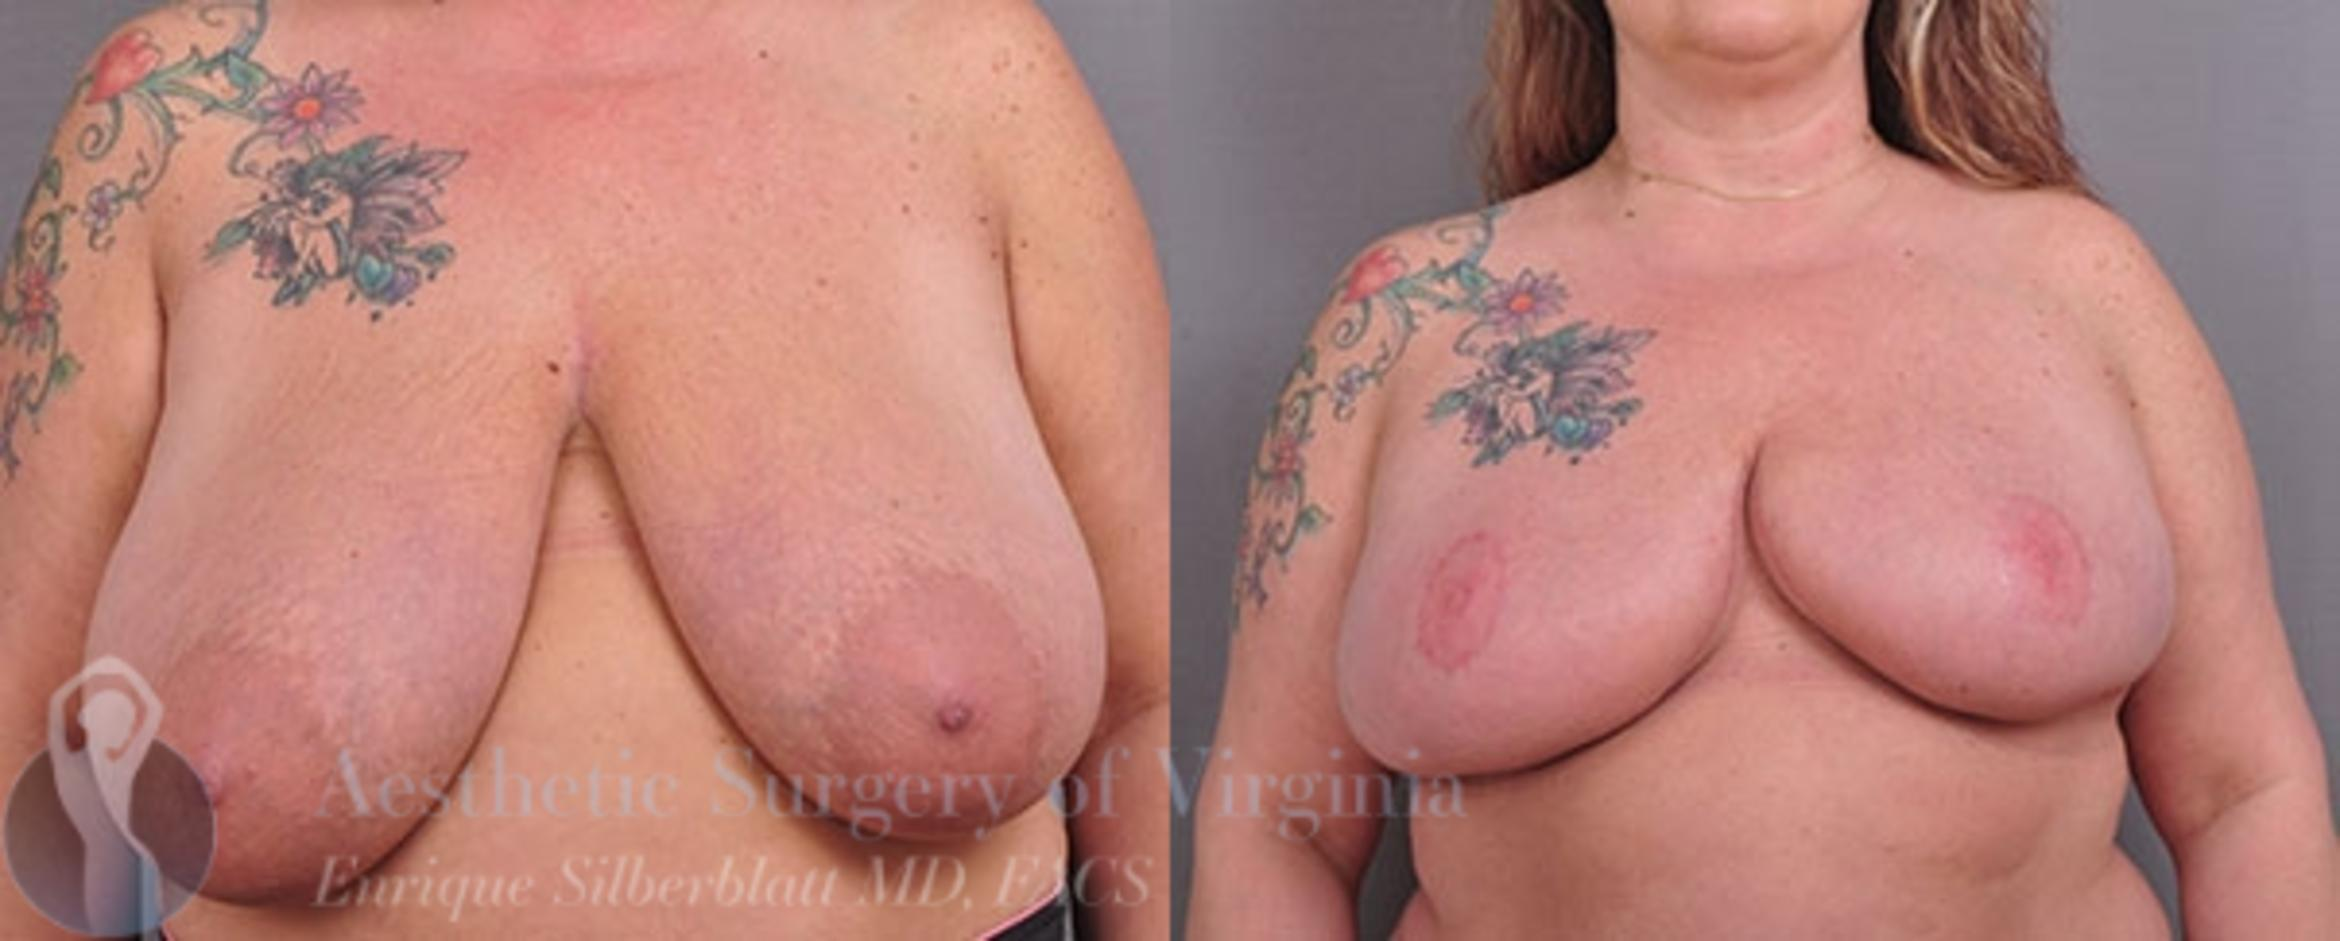 Breast Reduction Case 23 Before & After View #1 | Roanoke, VA | Aesthetic Surgery of Virginia: Enrique Silberblatt, MD